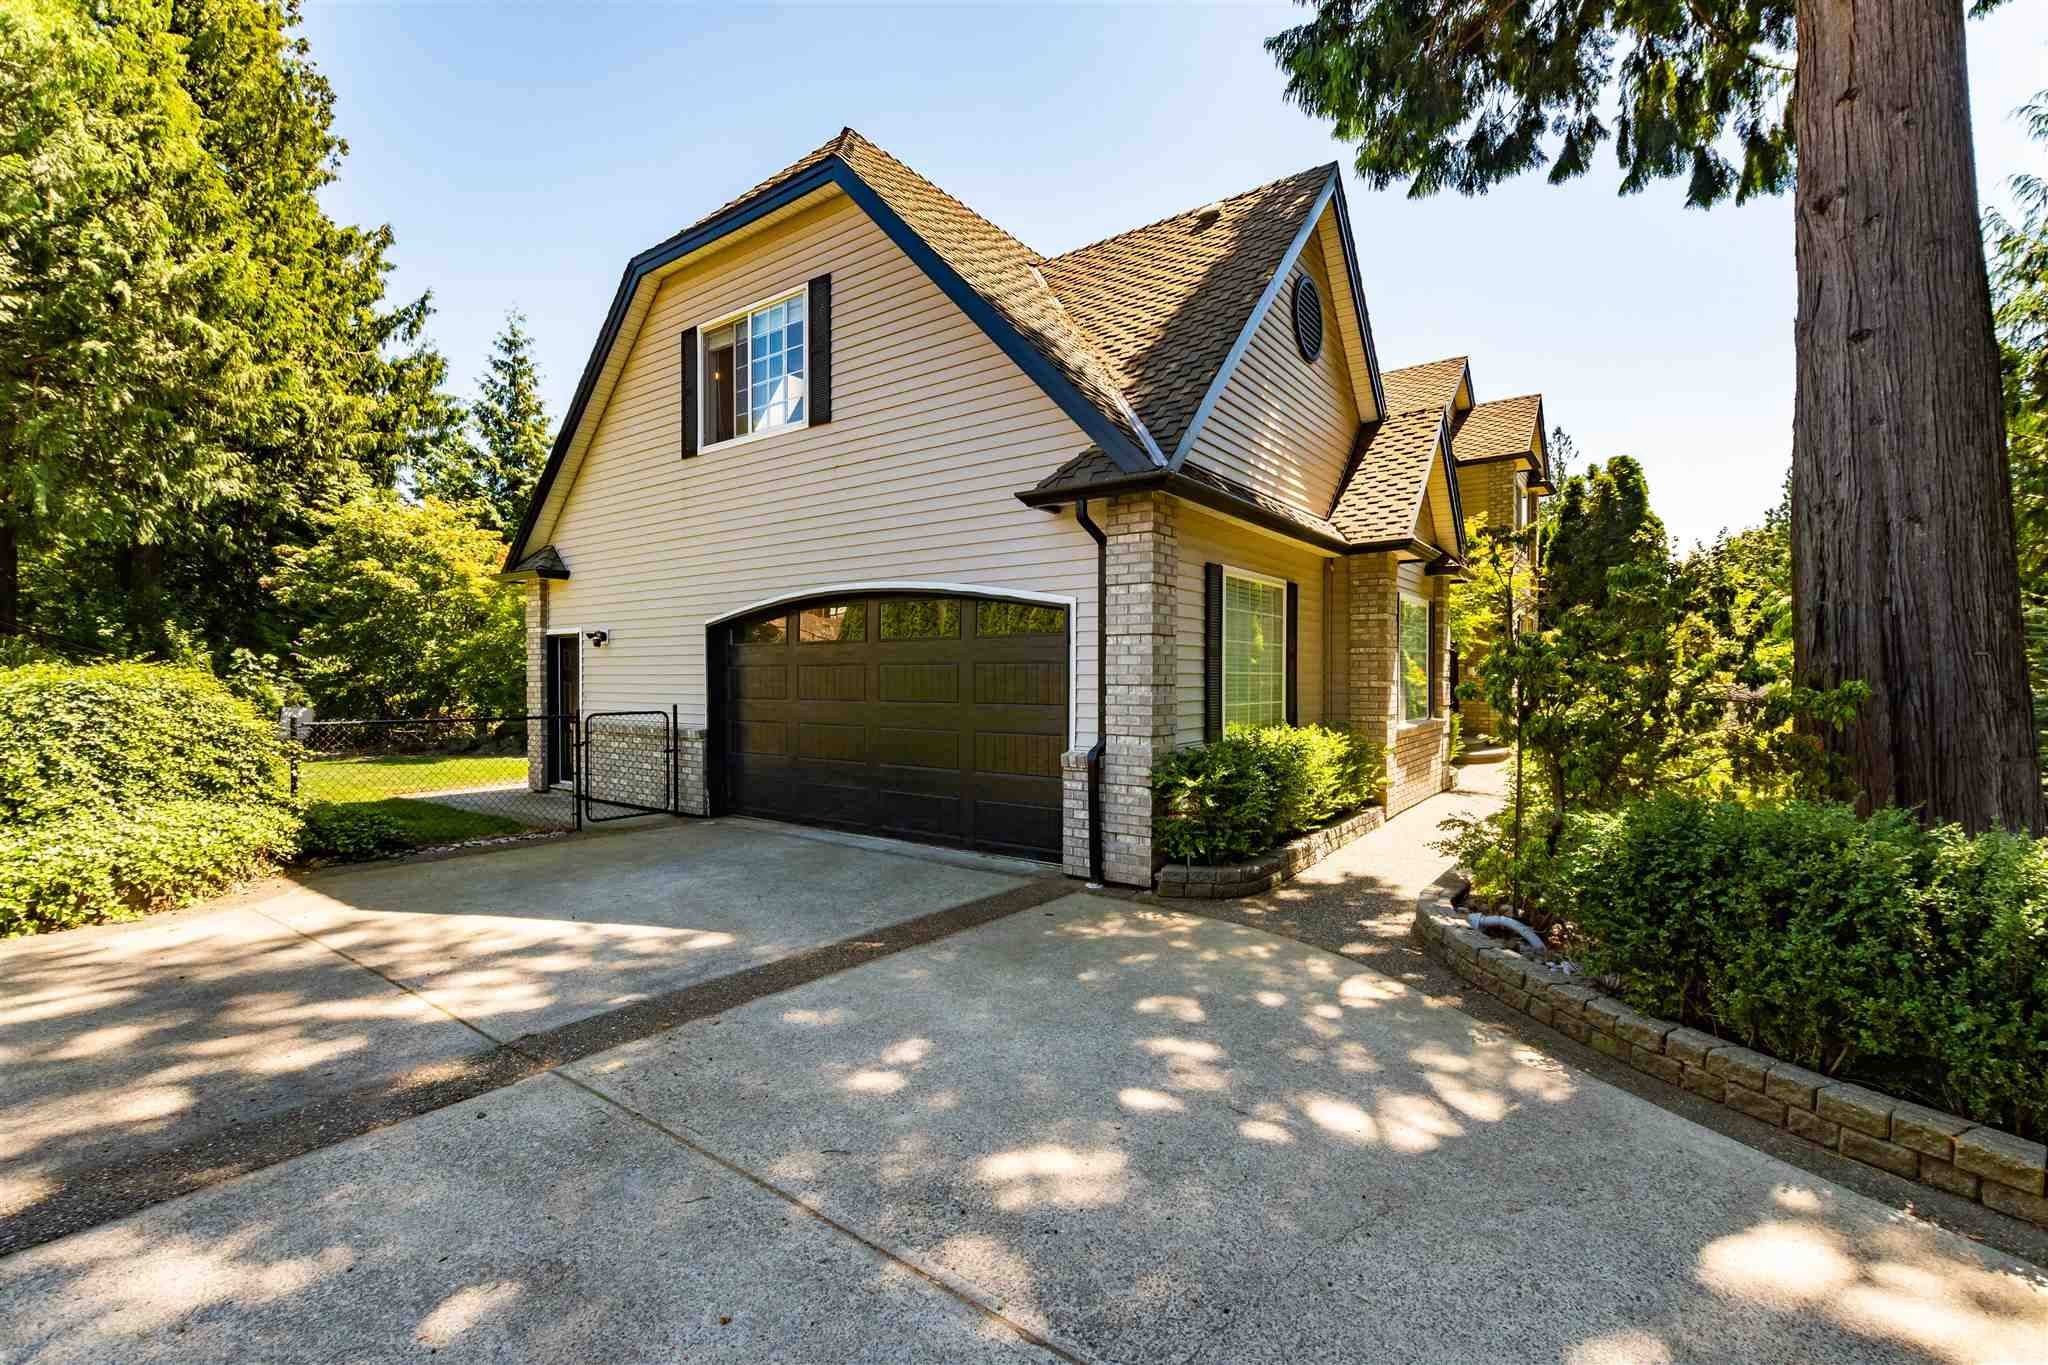 """Main Photo: 9950 STONEGATE Place in Chilliwack: Little Mountain House for sale in """"STONEGATE PLACE"""" : MLS®# R2604740"""